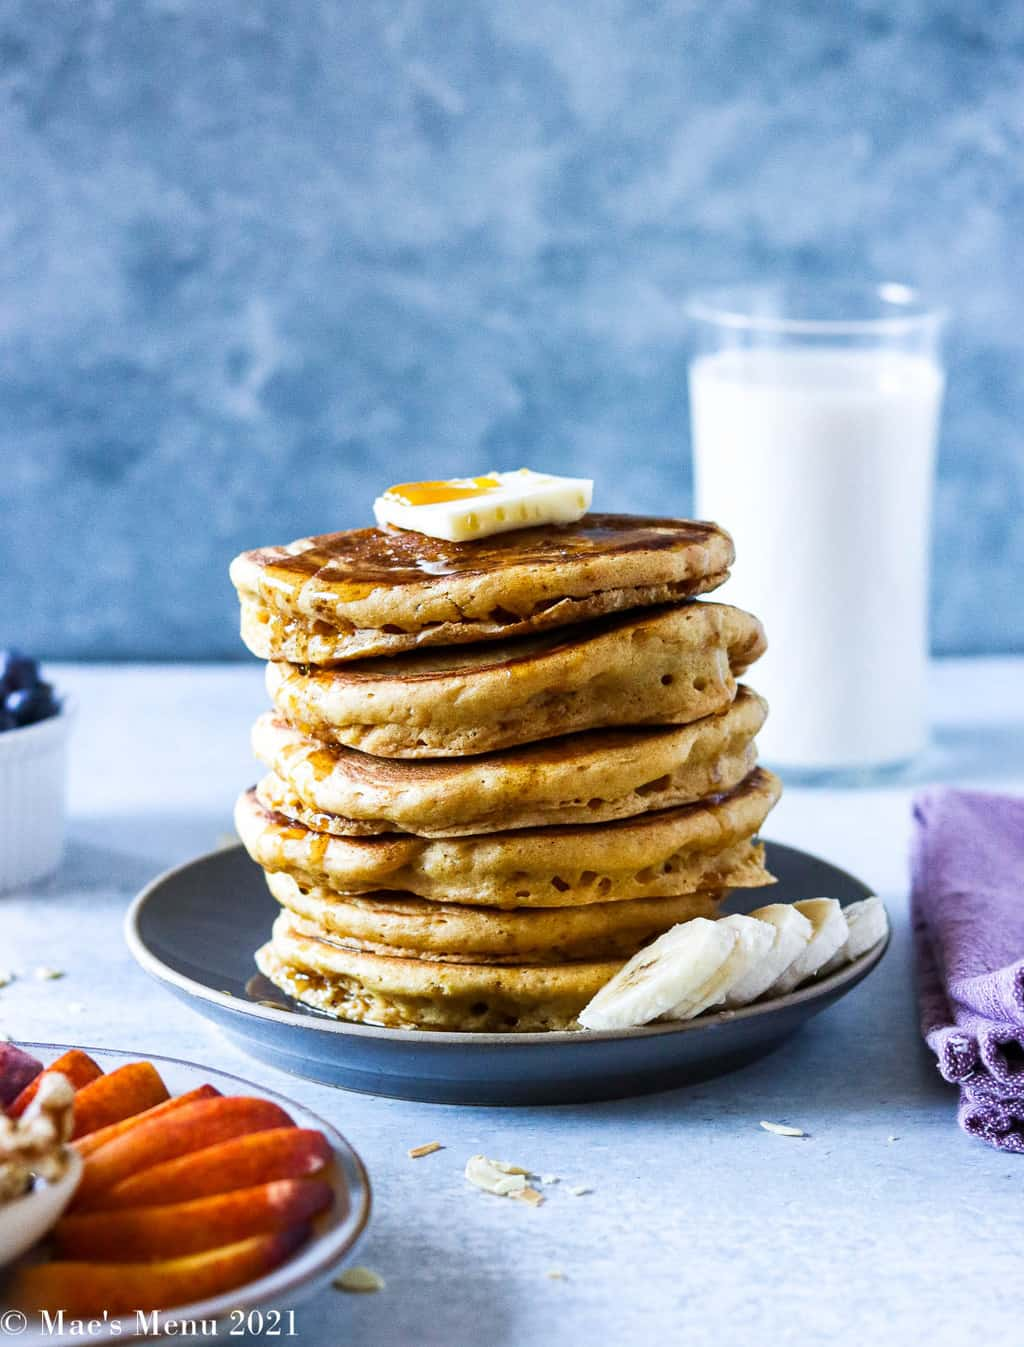 A large stack of whole wheat pancakes on a plate surrounded by fruit and a glass of milk